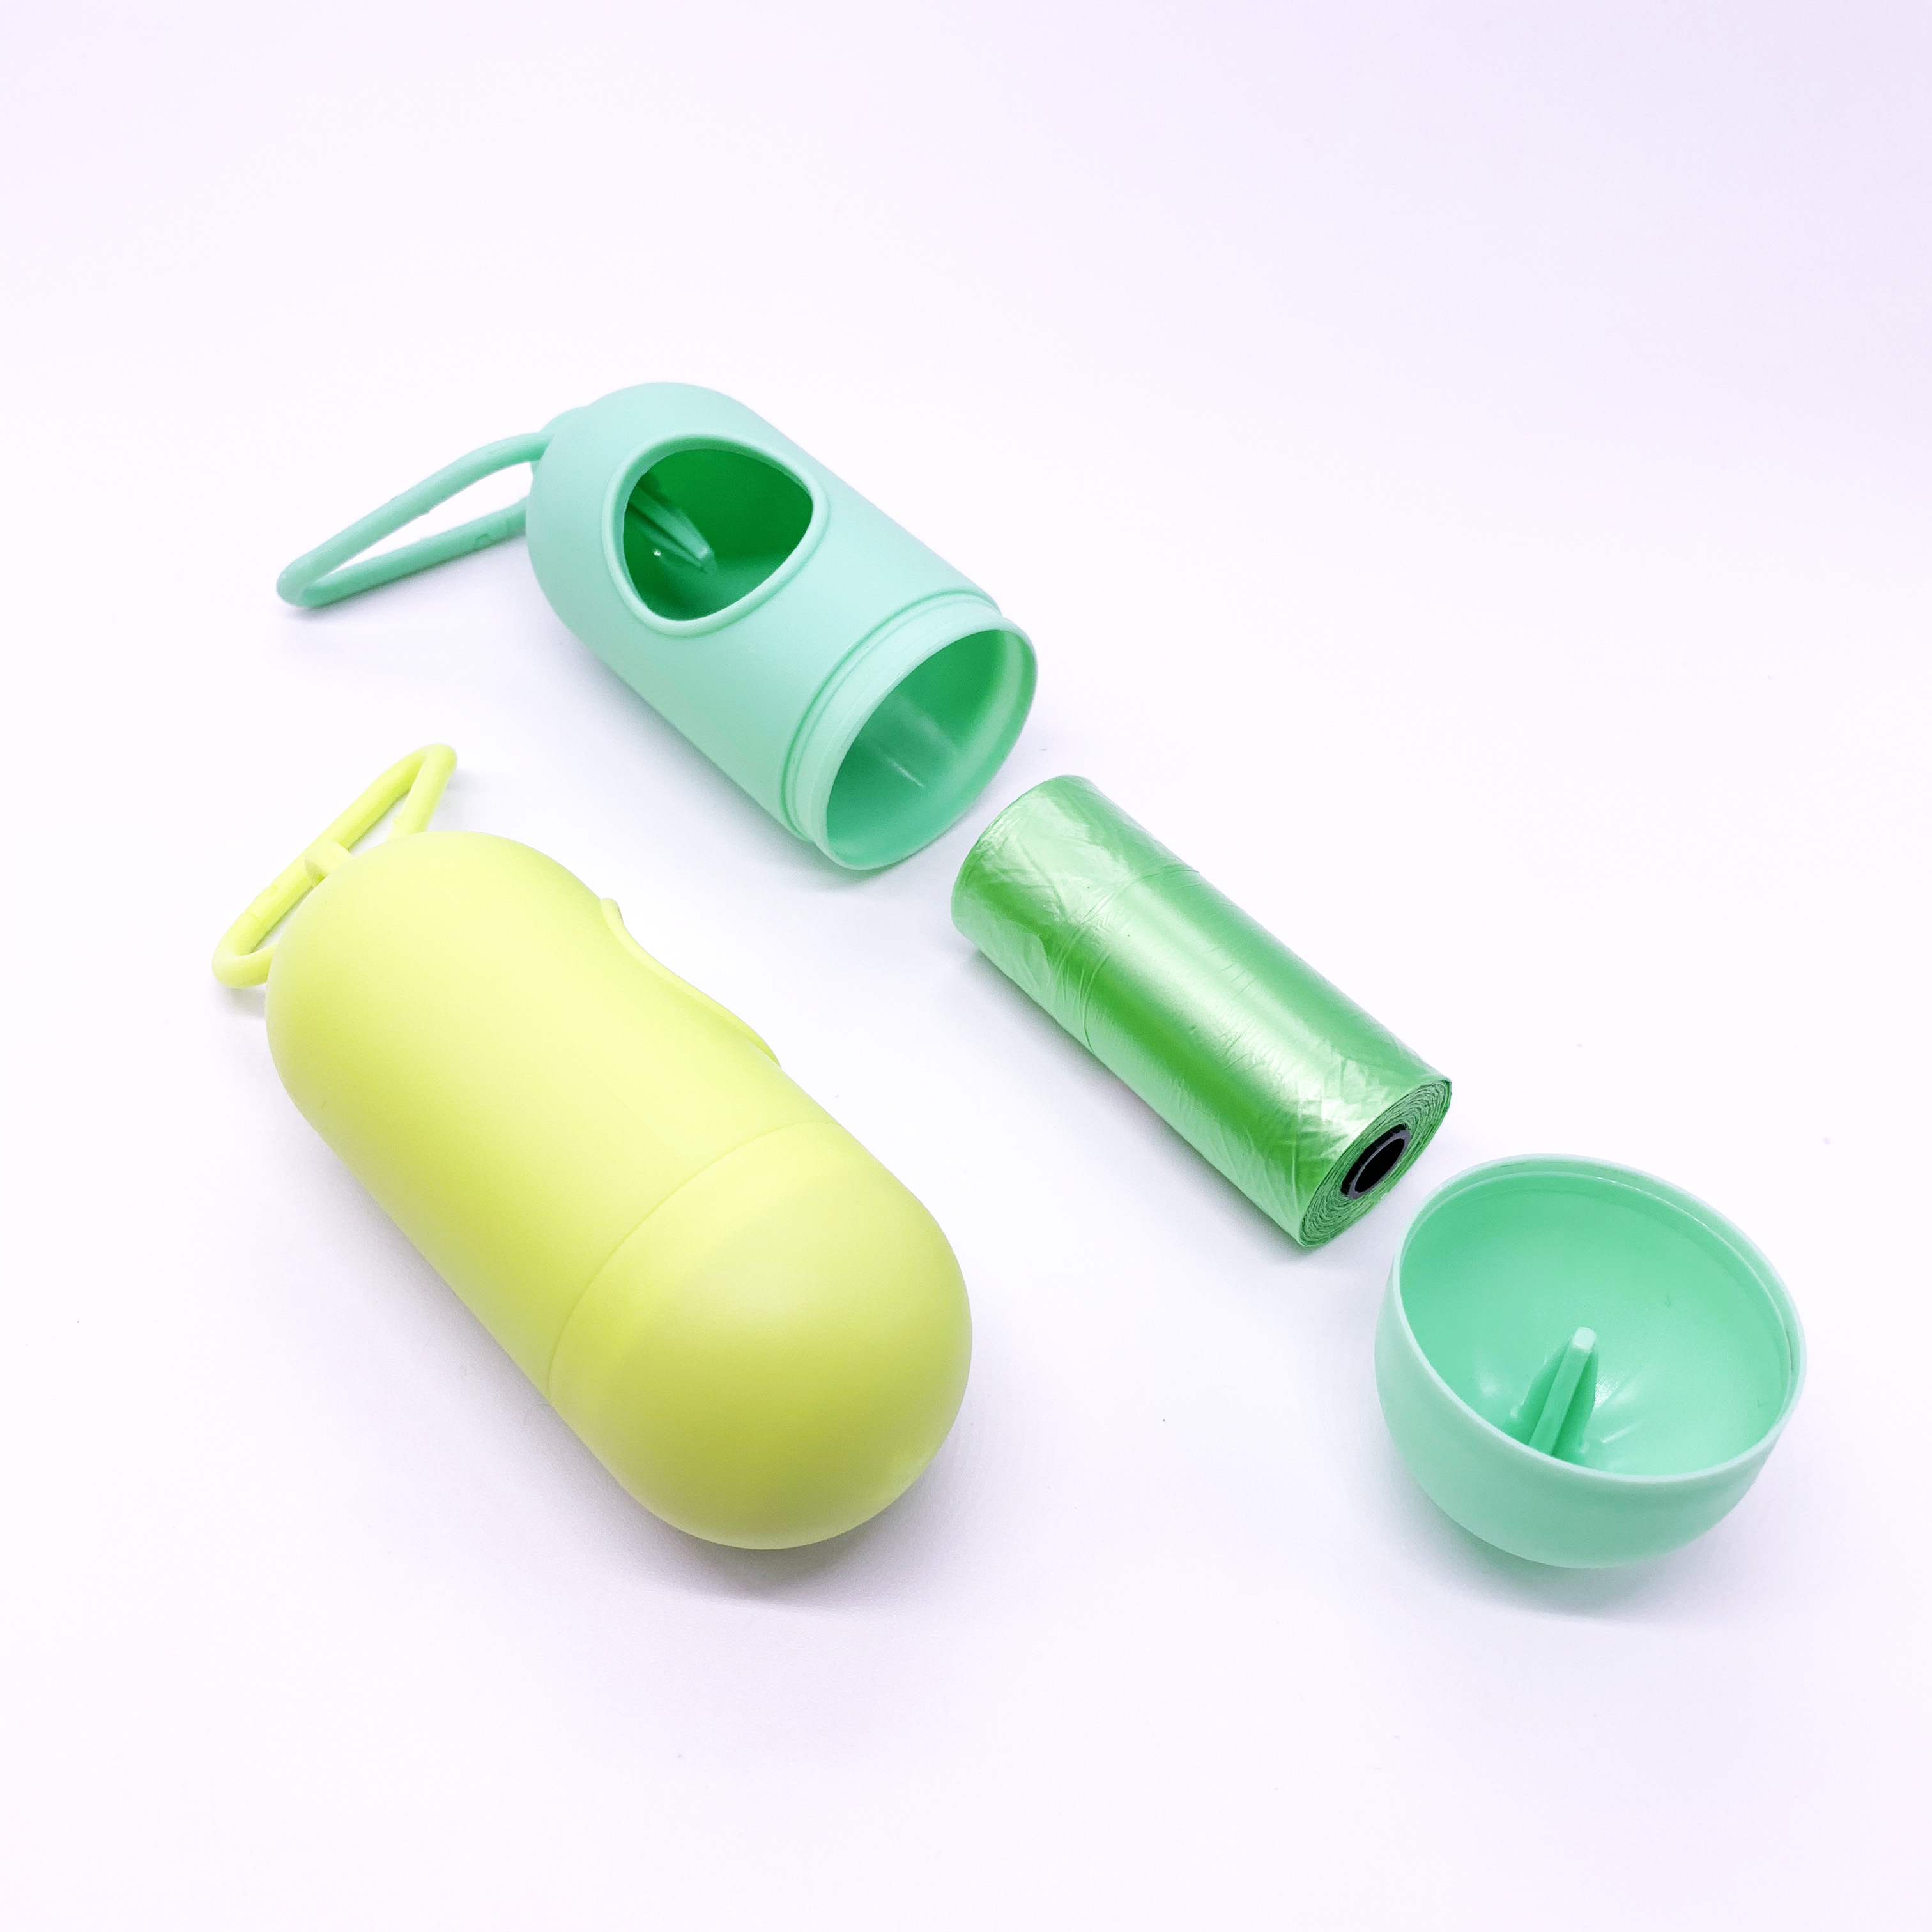 Whole sale and reudable outdoor plastic bag dispenser organizer silicone garbage bag holders